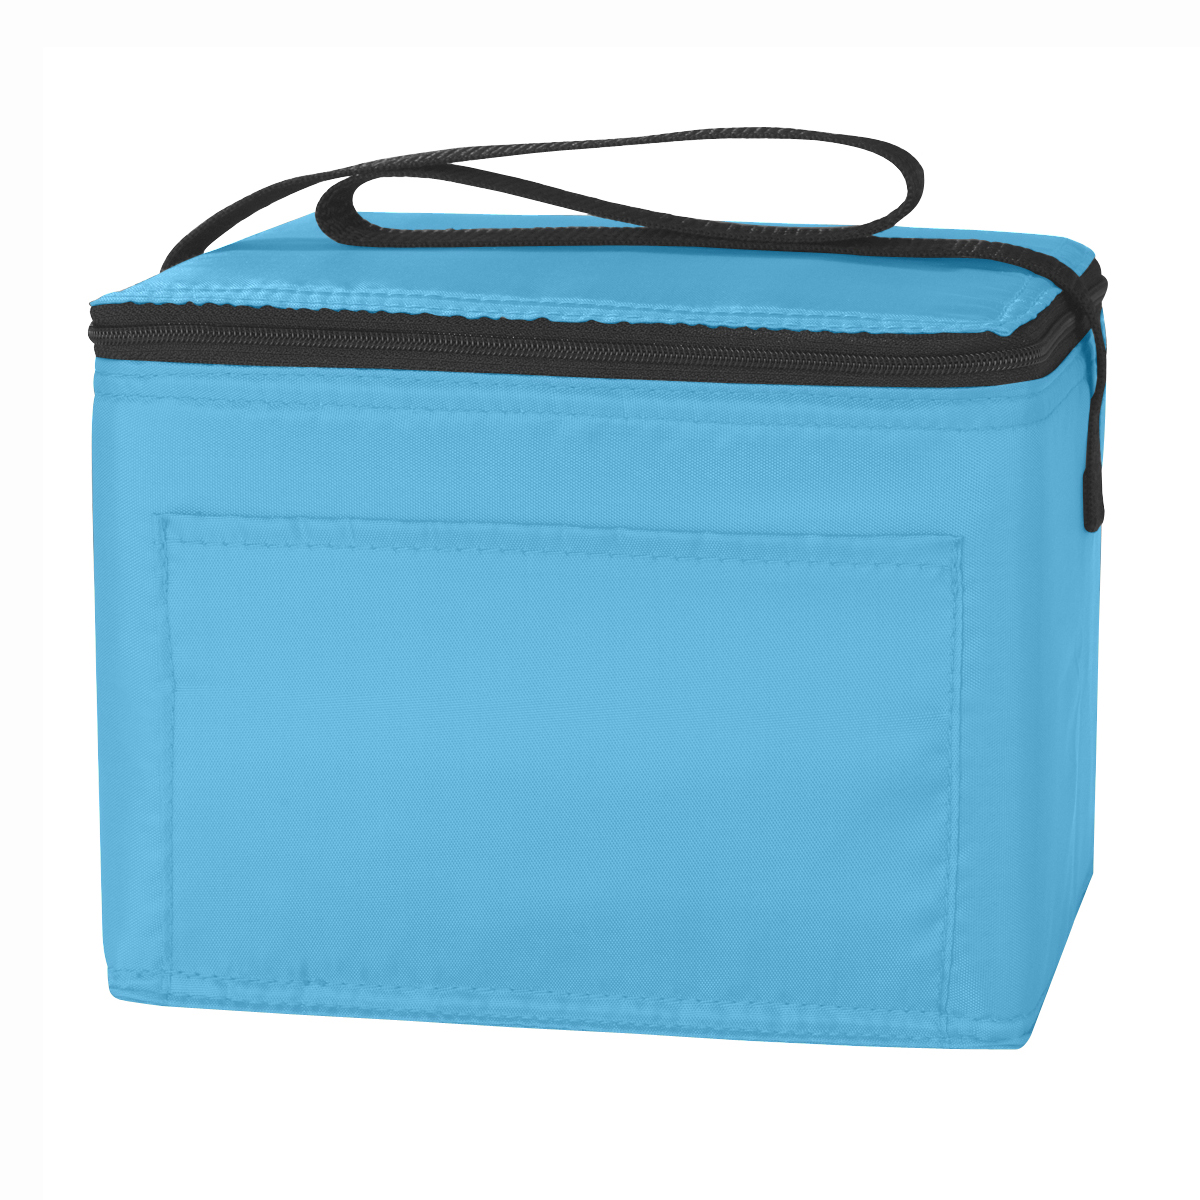 Printed Budget Cooler Bag